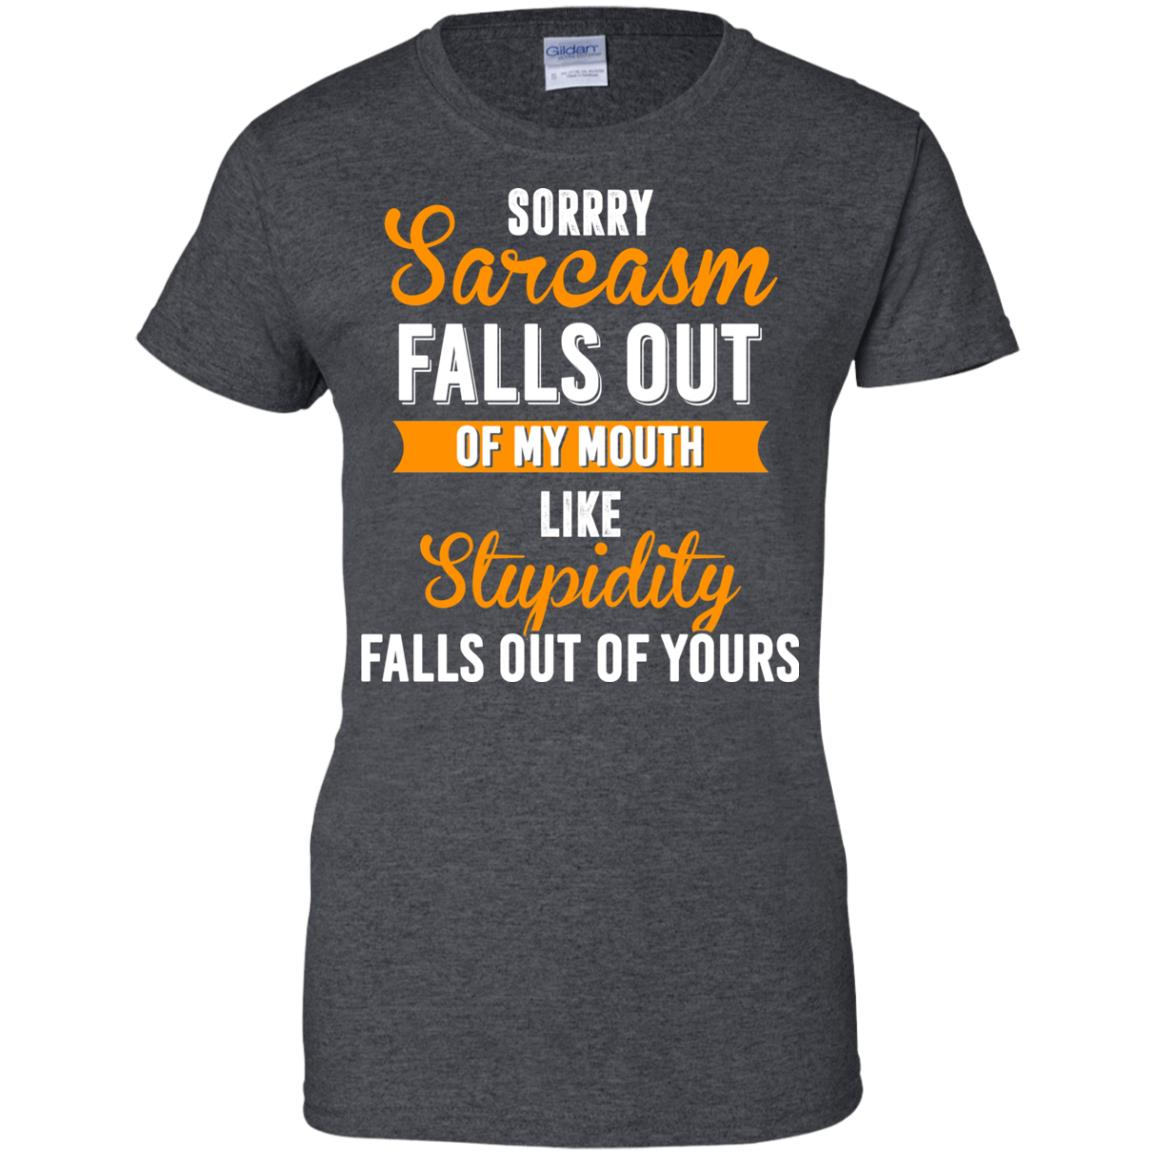 image 522px Sorry, Sarcasm Falls Out of my Mouth Like Stupidity Falls Out Of Yours Shirt, Tank